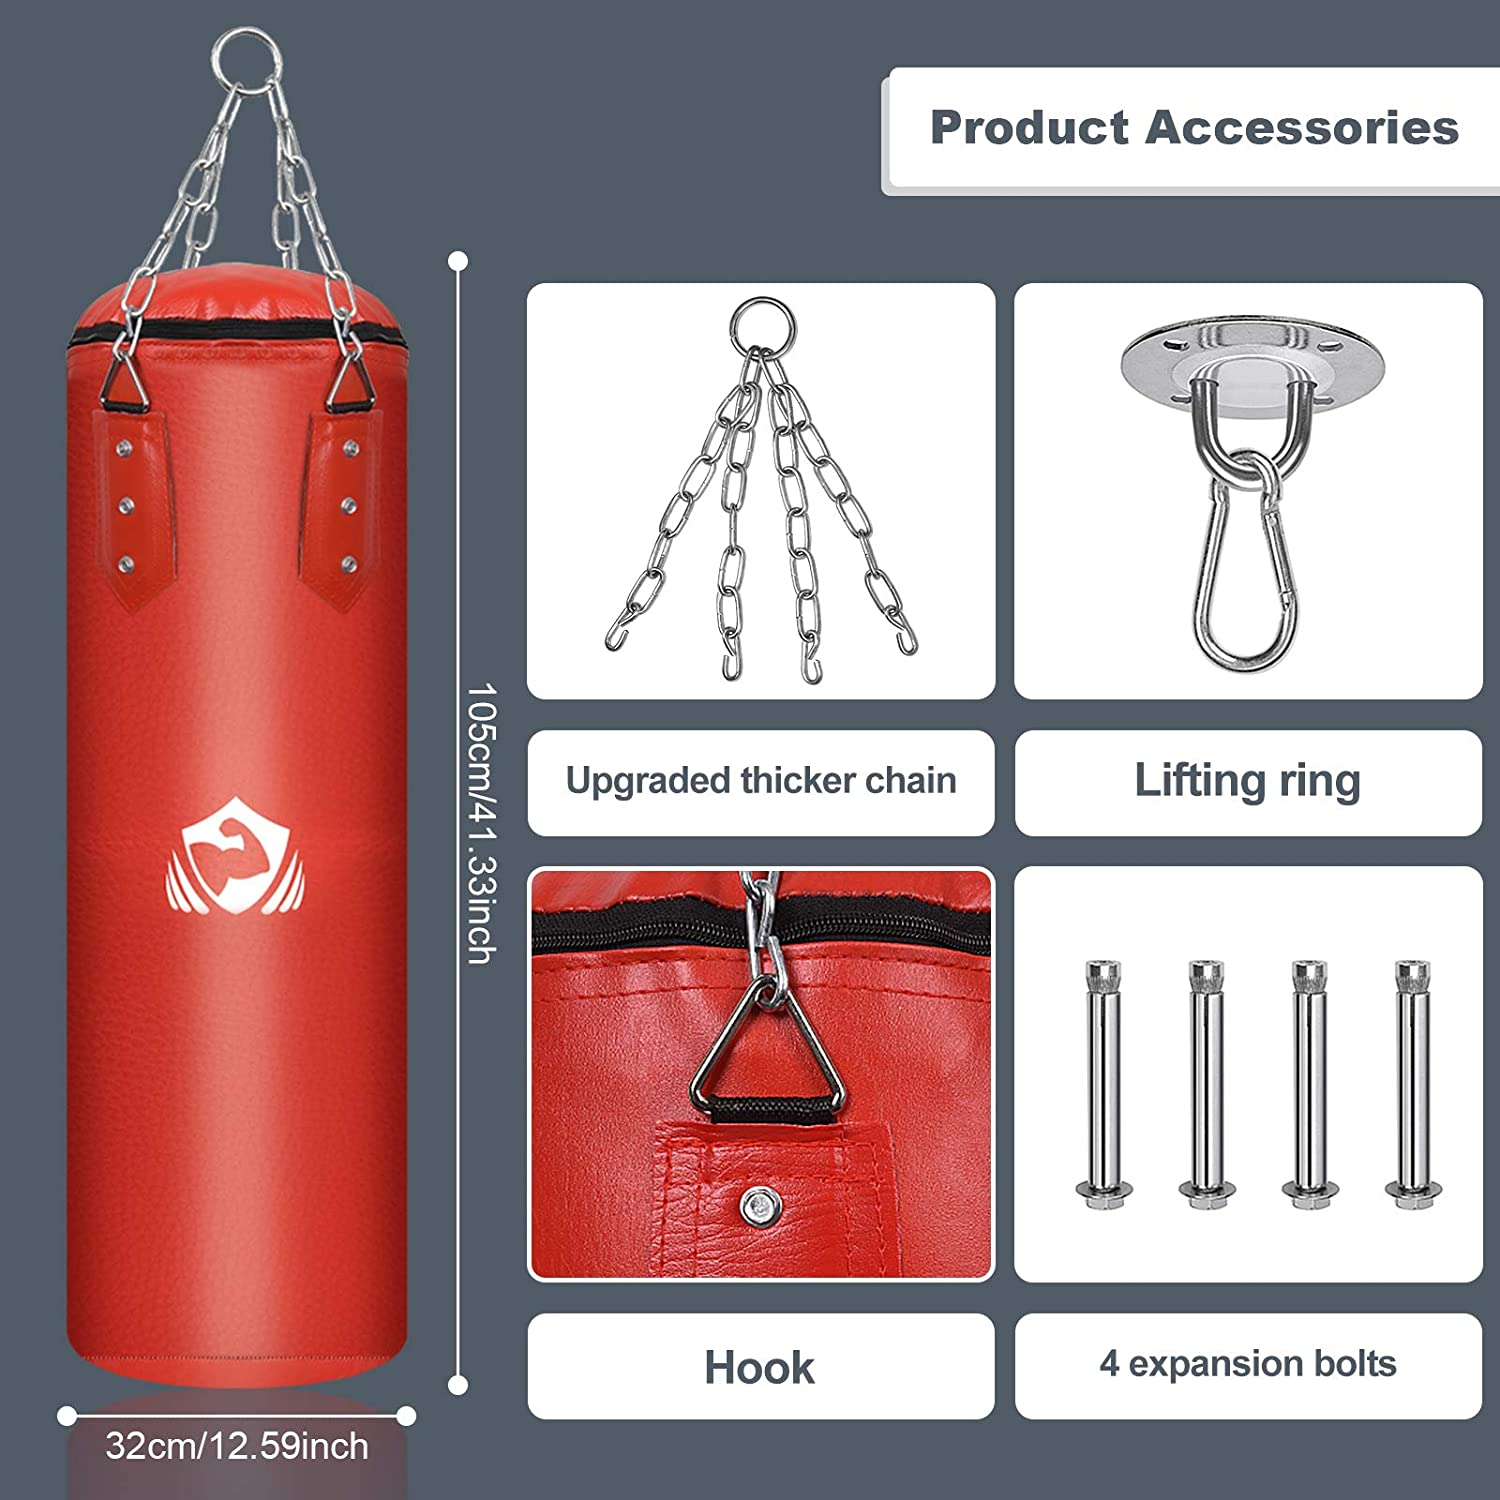 BOBUEXER Boxing Suspension Heavy Bag -35LBS Heavy Punch Bag TTwo Colors to Choose from -MMA Thai Boxing Training Good Choice Taekwondo Family Child and Adult Interactive Partner.